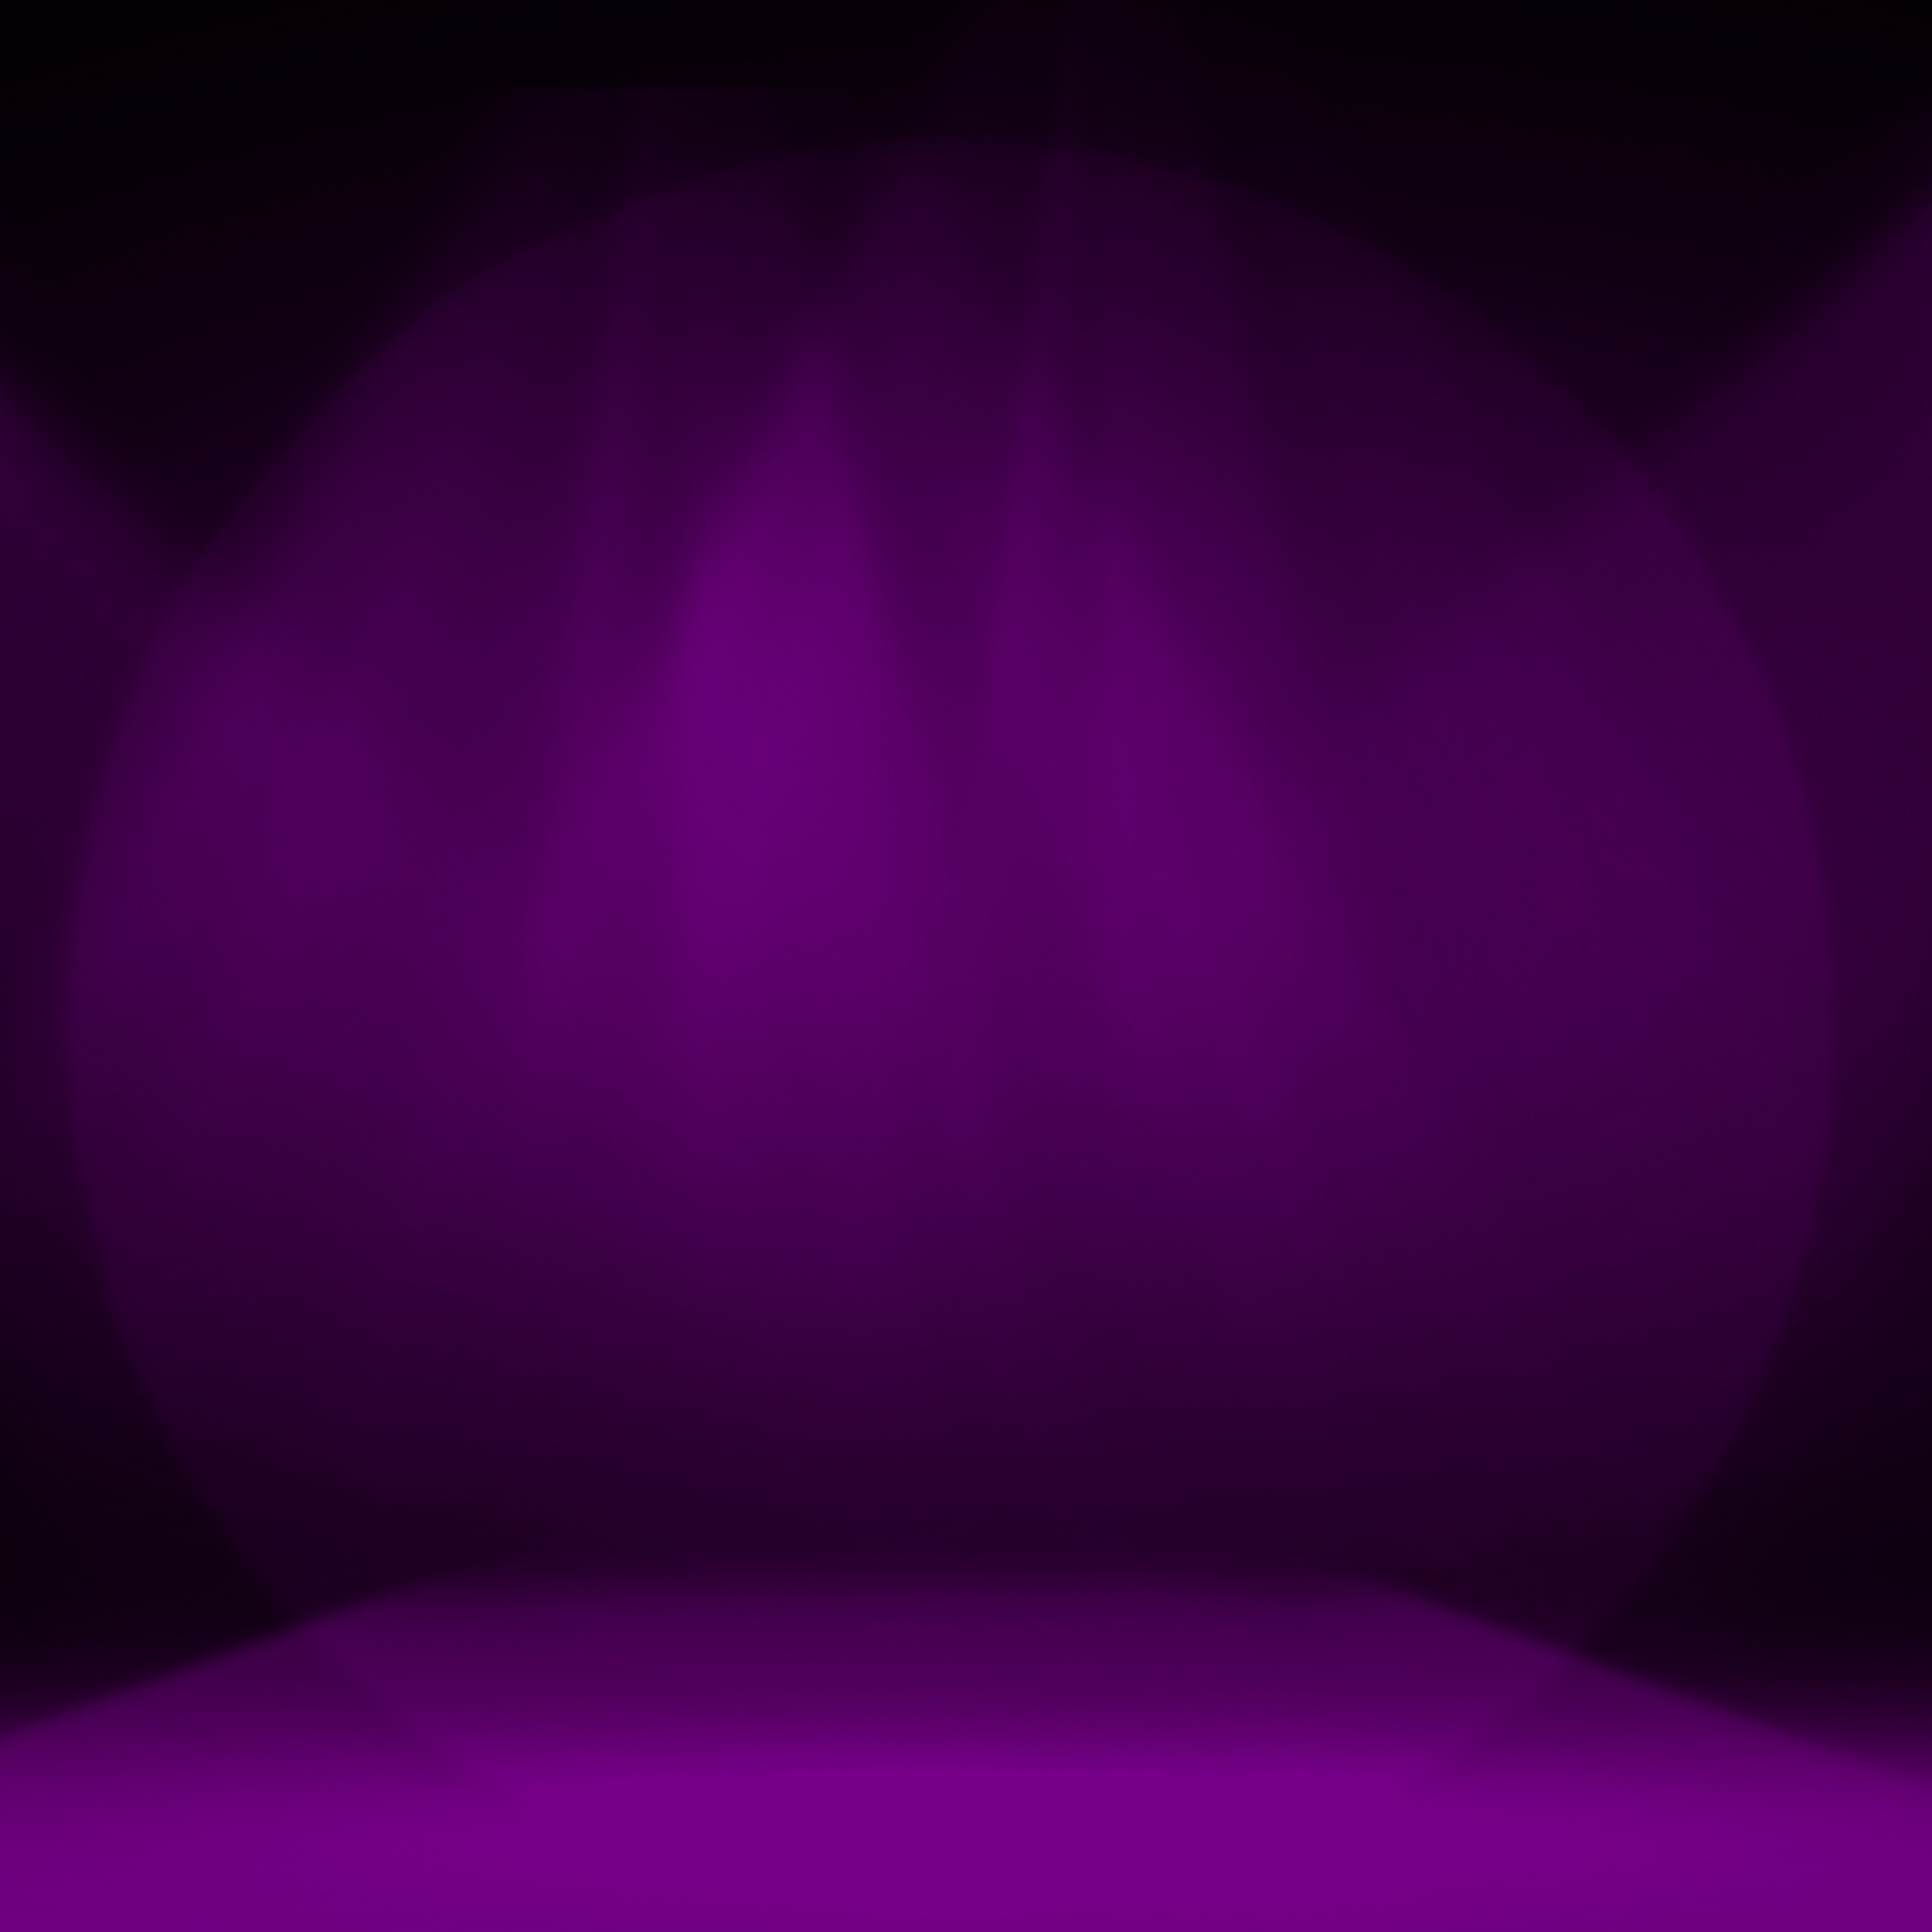 Purple Stage Decoration iPad Wallpaper